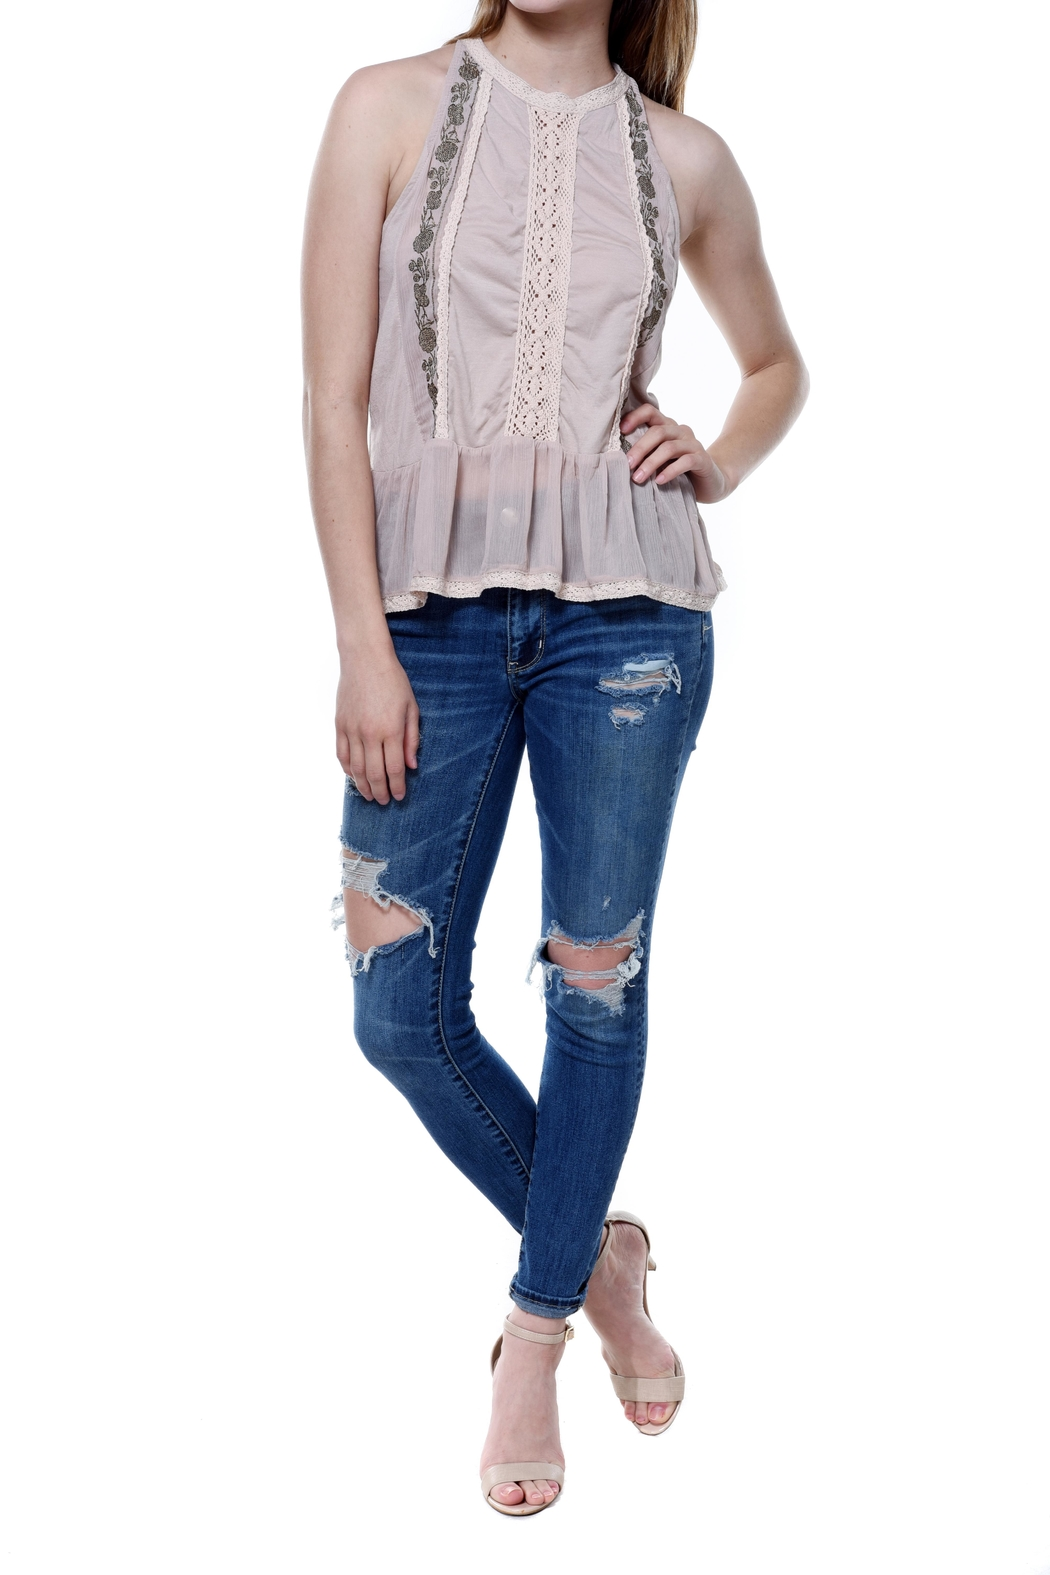 Bishop + Young Daniela Embroidered Sleeveless Blouse - Front Full Image